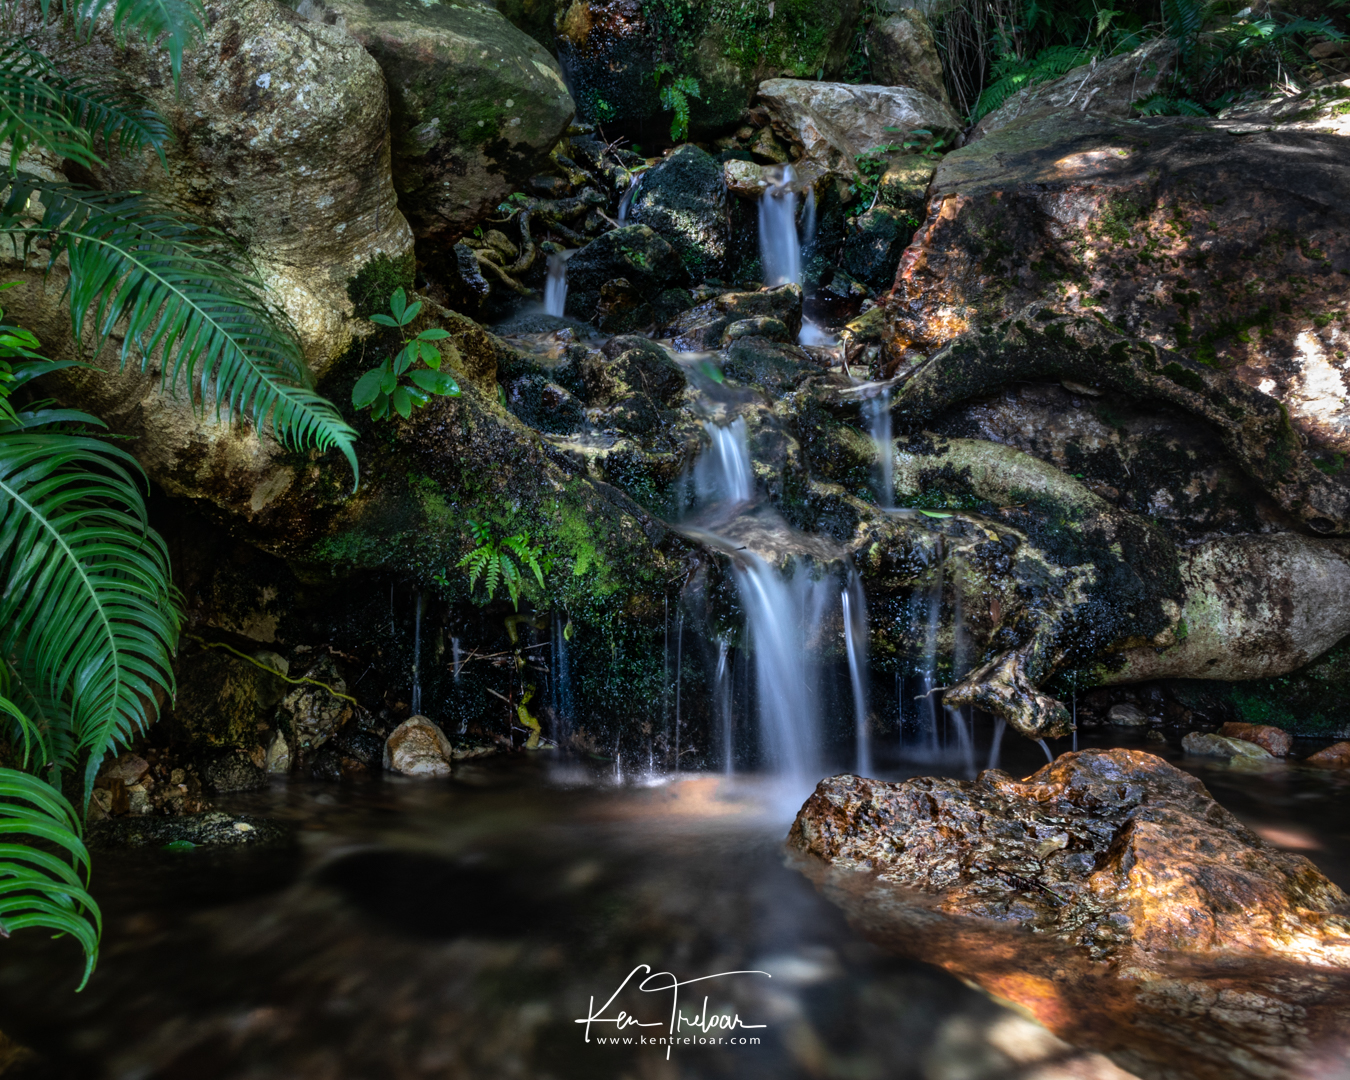 Jonkershoek Hiking Trail, Stellenbosch, South Africa - photo by Ken Treloar Photography 2018 (Low Res)-10.jpg